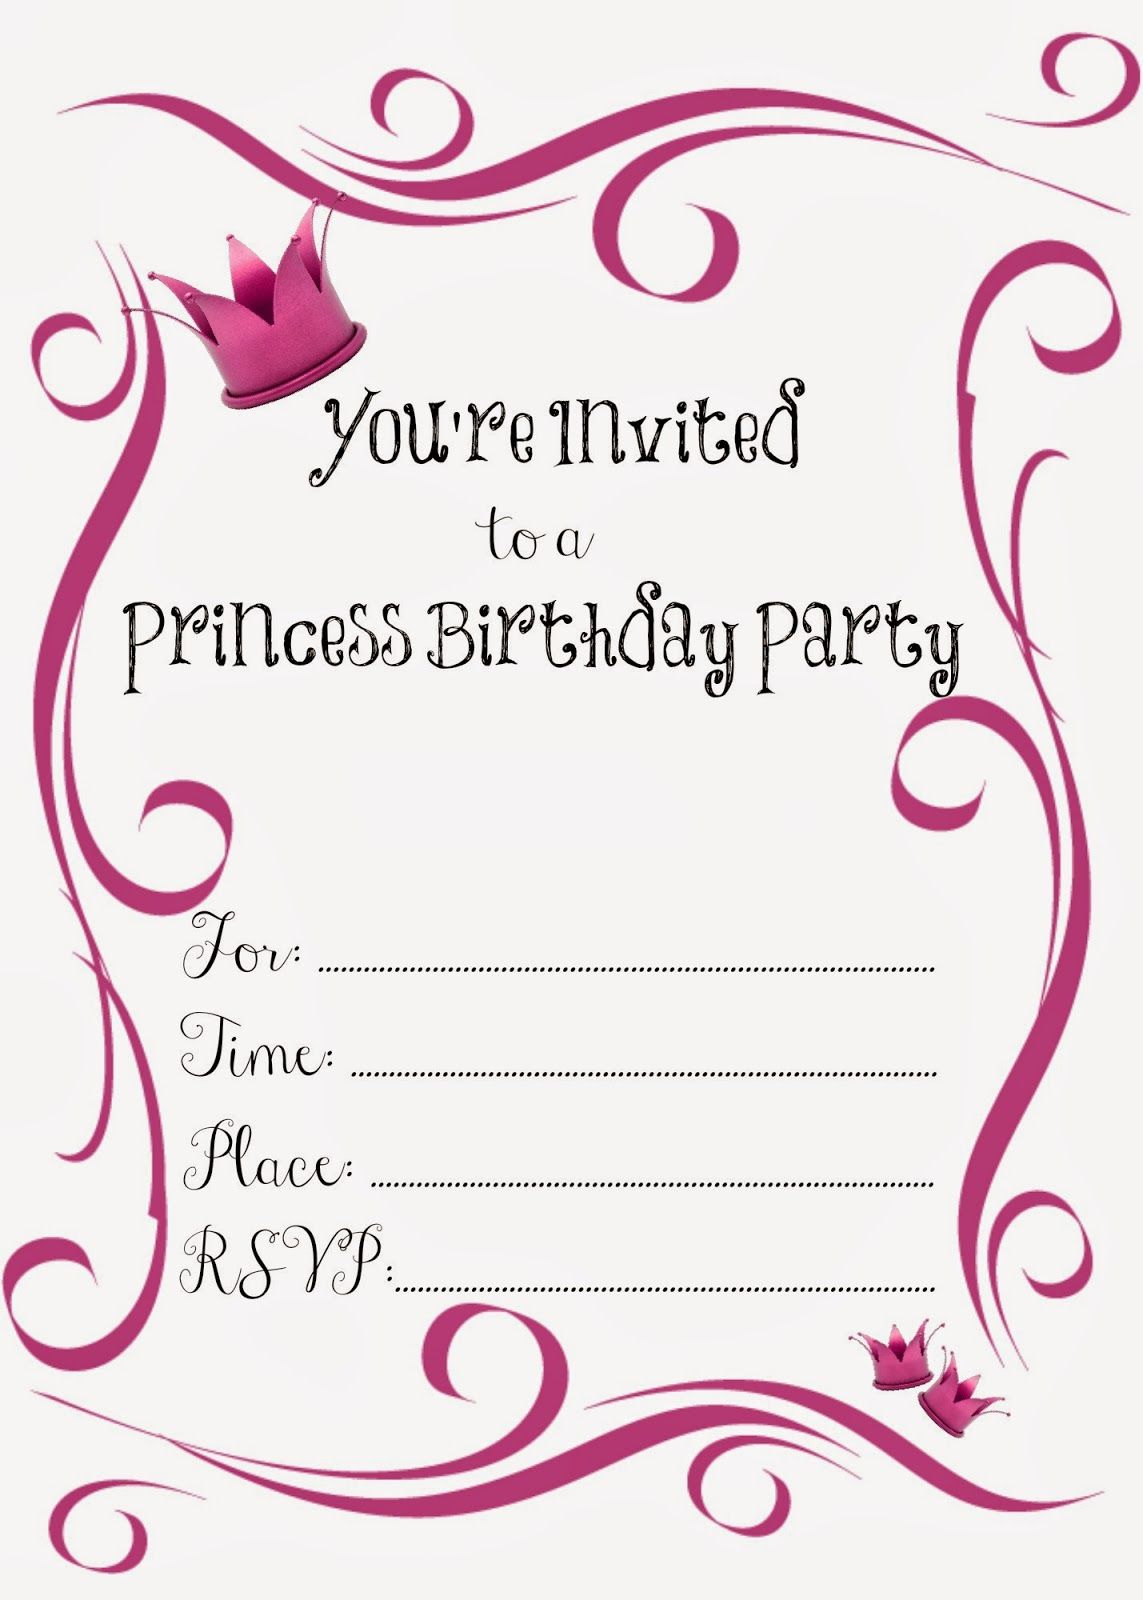 It's A Princess Thing: Free Printable Princess Birthday Party - Free Princess Printable Invitations